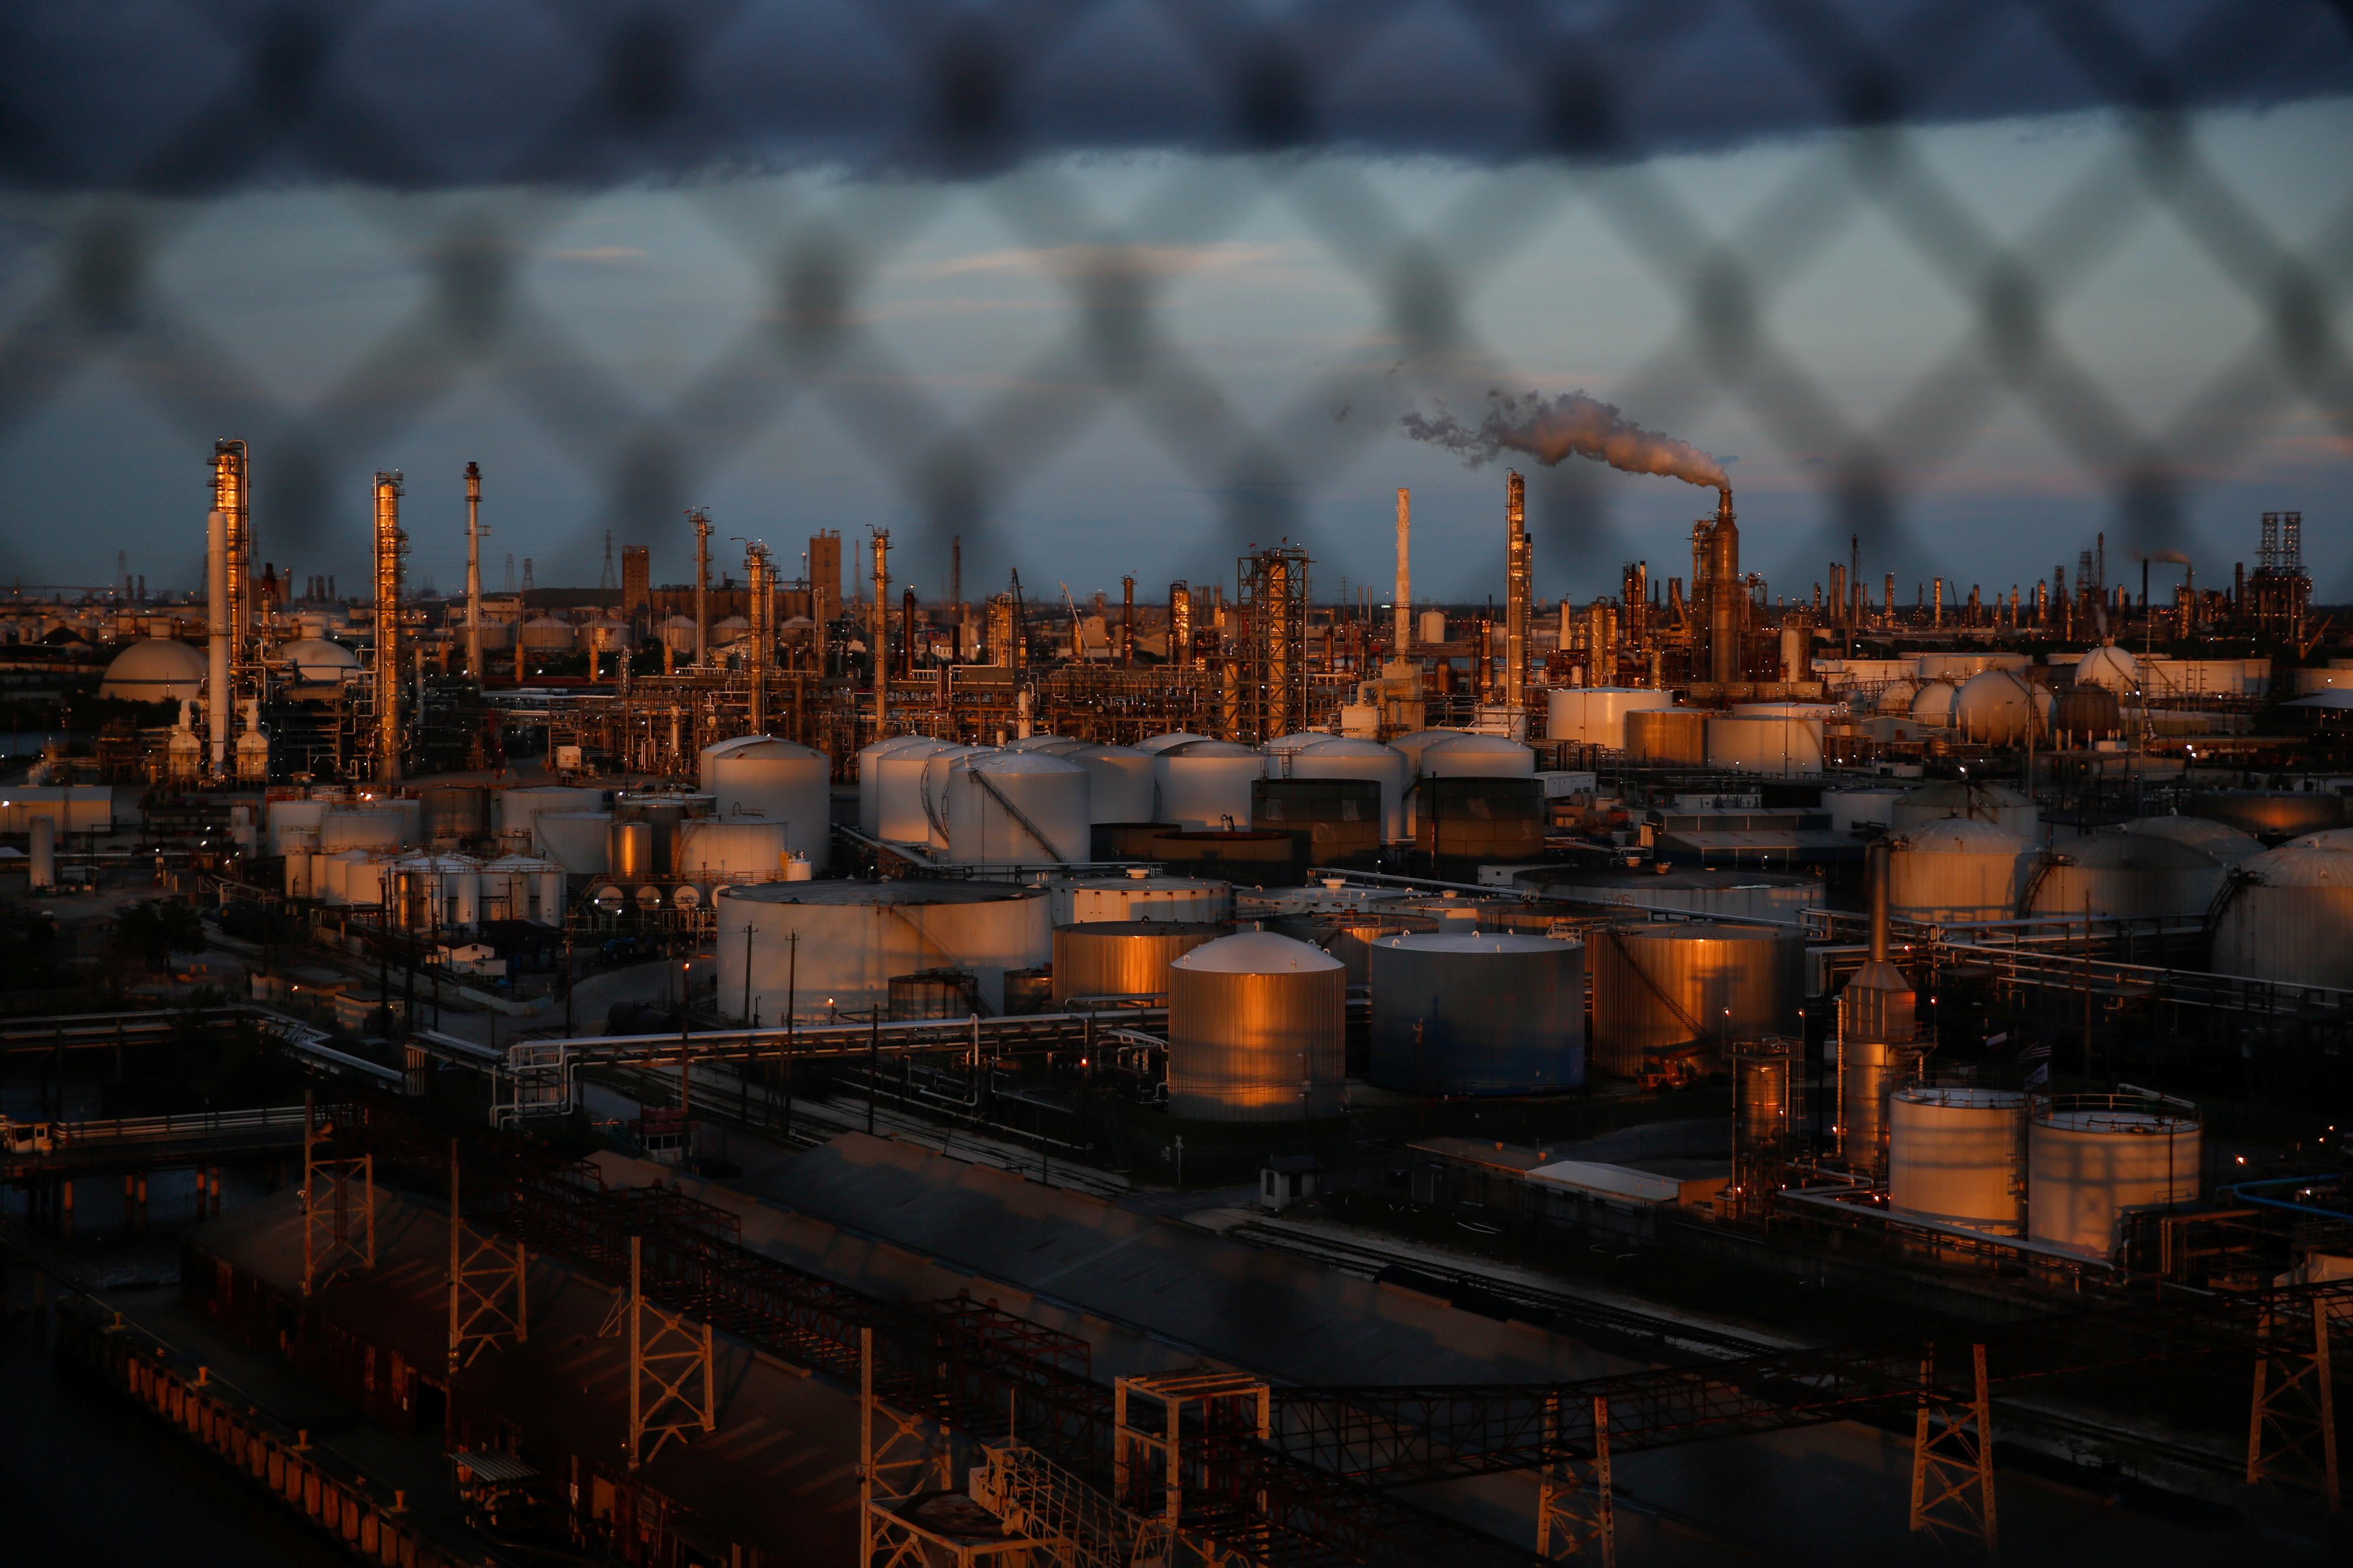 Chemical plants and refineries near the Houston Ship Channel are seen next to the Manchester neighborhood in the industrial east end of Houston, Texas, U.S., August 9, 2018. REUTERS/Loren Elliott